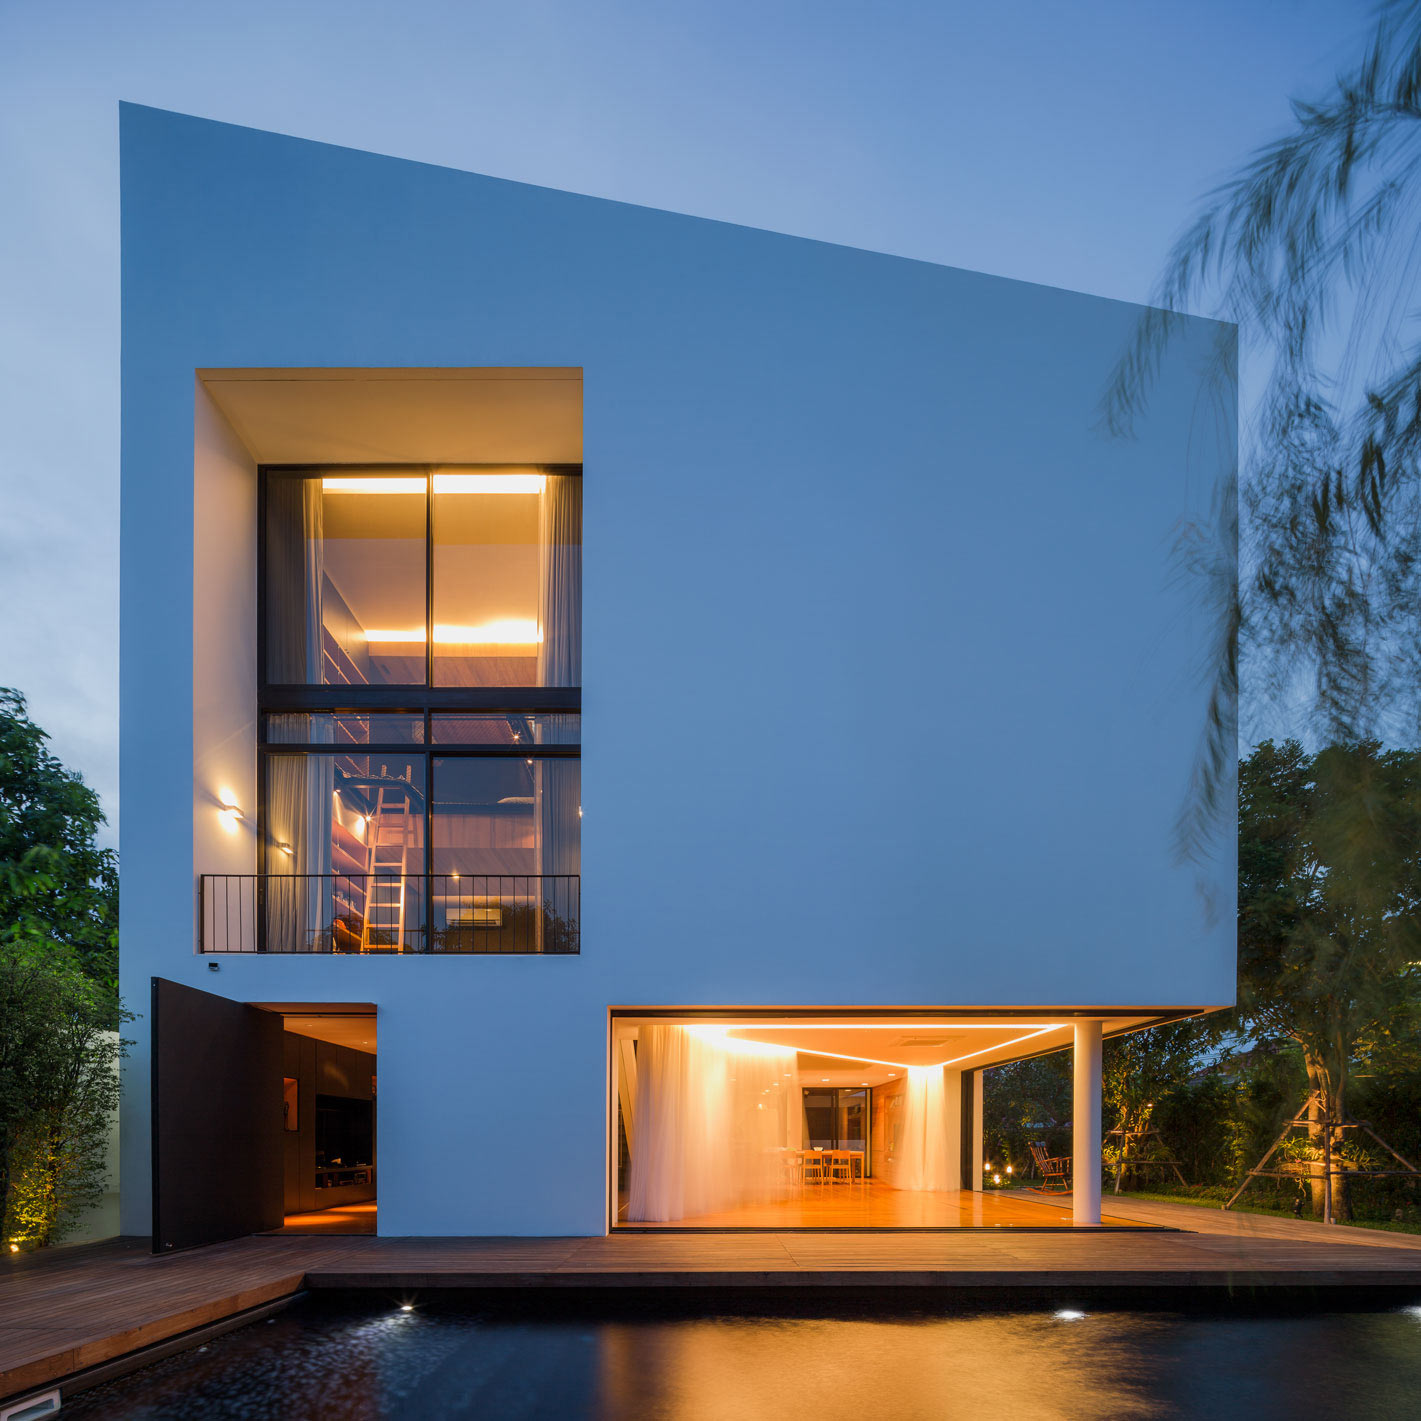 Modern White House with Integrated Angles and Corners - Design Milk